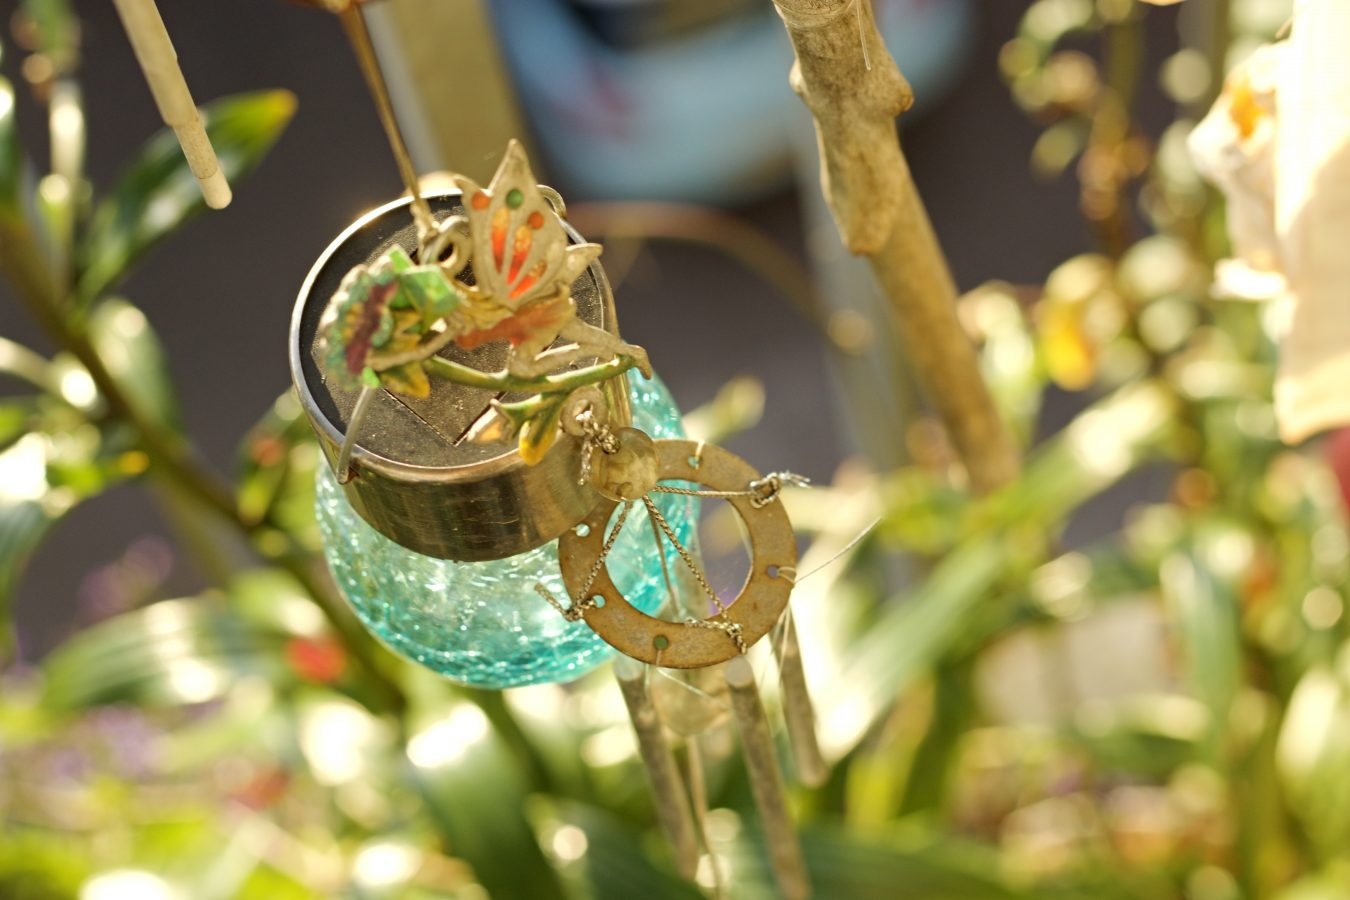 Pat's balcon arnaments. Catch the butterfly if you can.